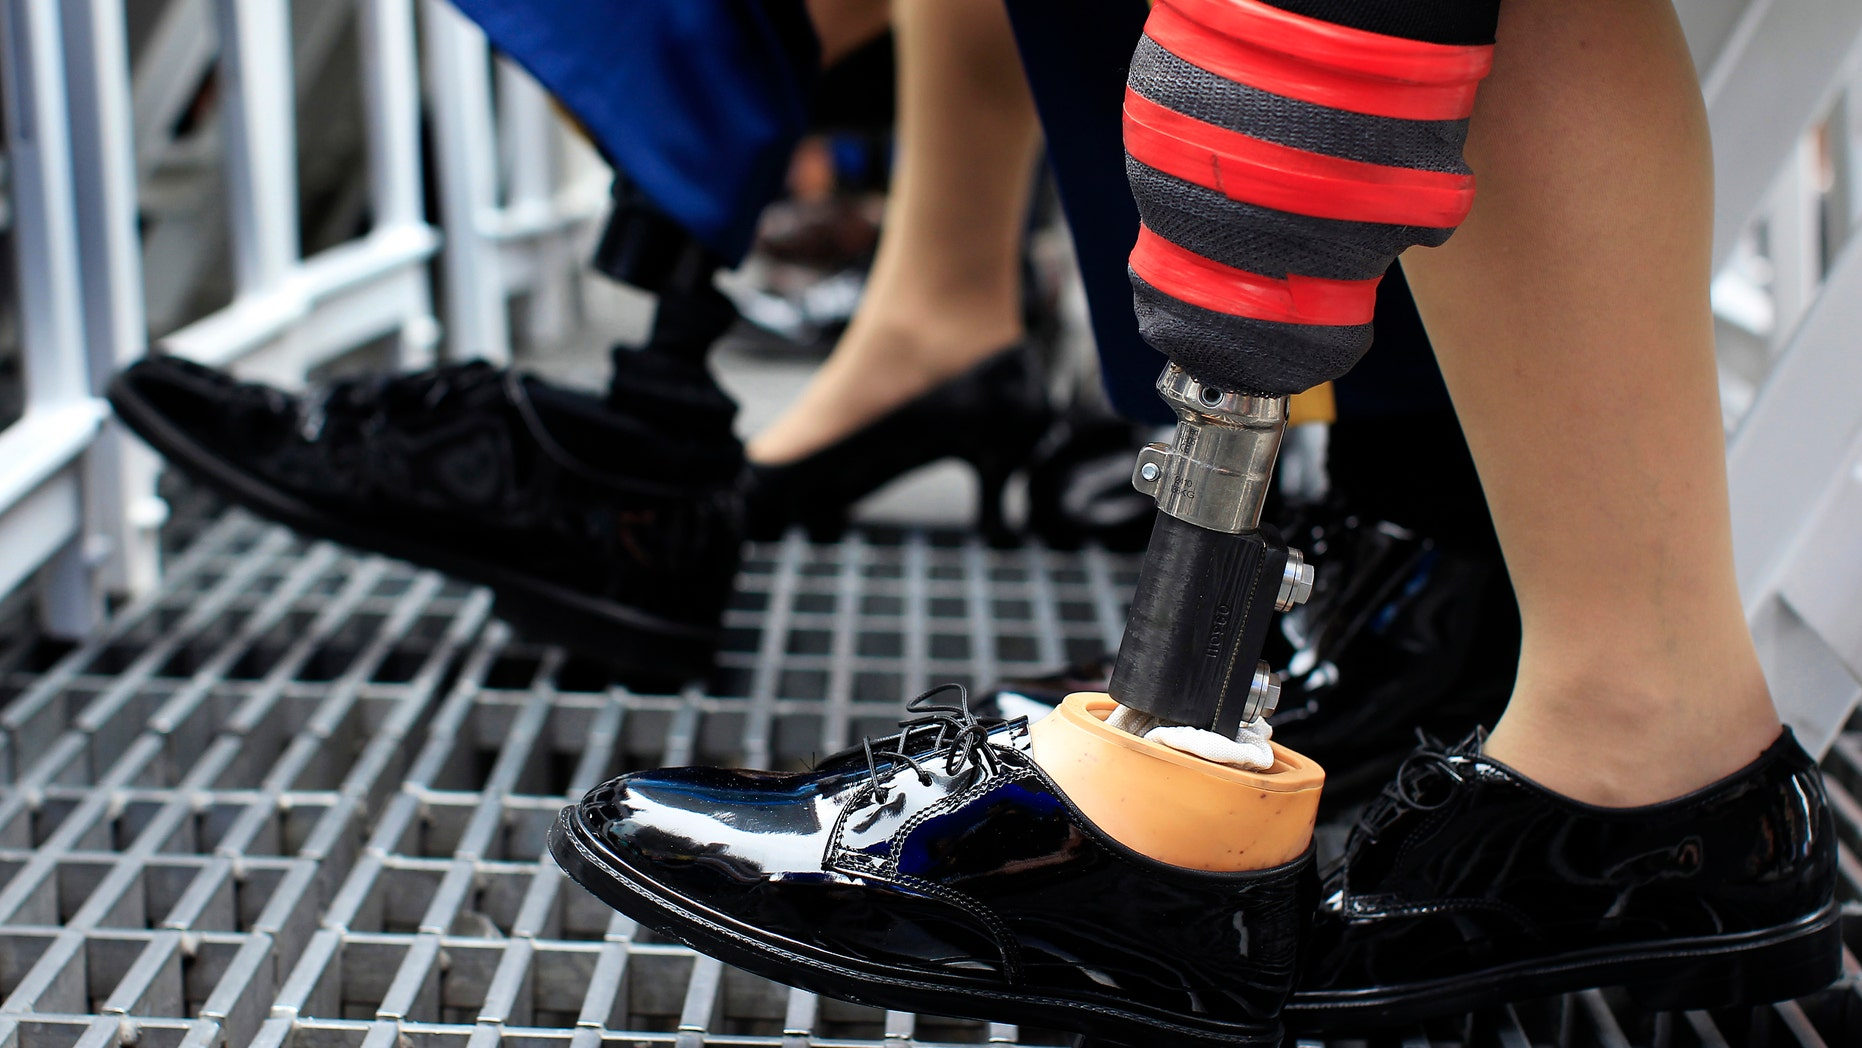 Prosthetic legs are seen on U.S. Army soldiers attending the Army's 237th anniversary celebrations at Times Square in New York.